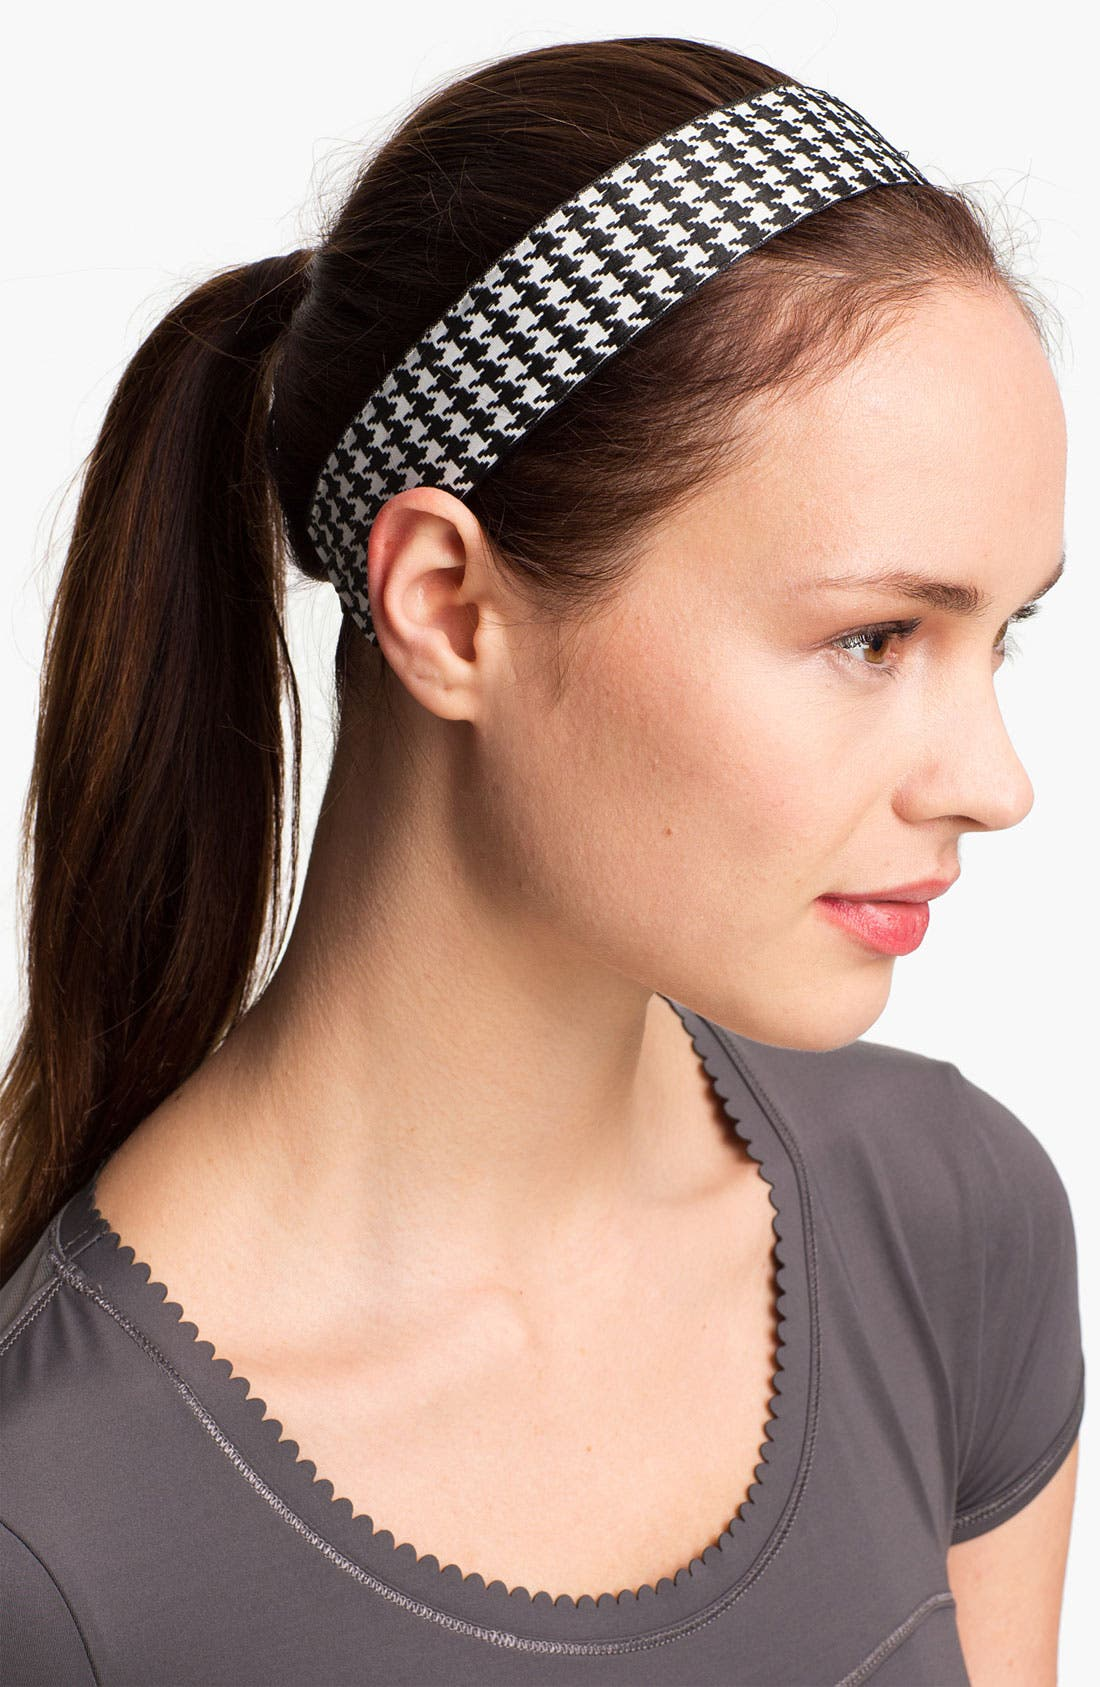 Alternate Image 1 Selected - Sweaty Bands Houndstooth Head Wrap